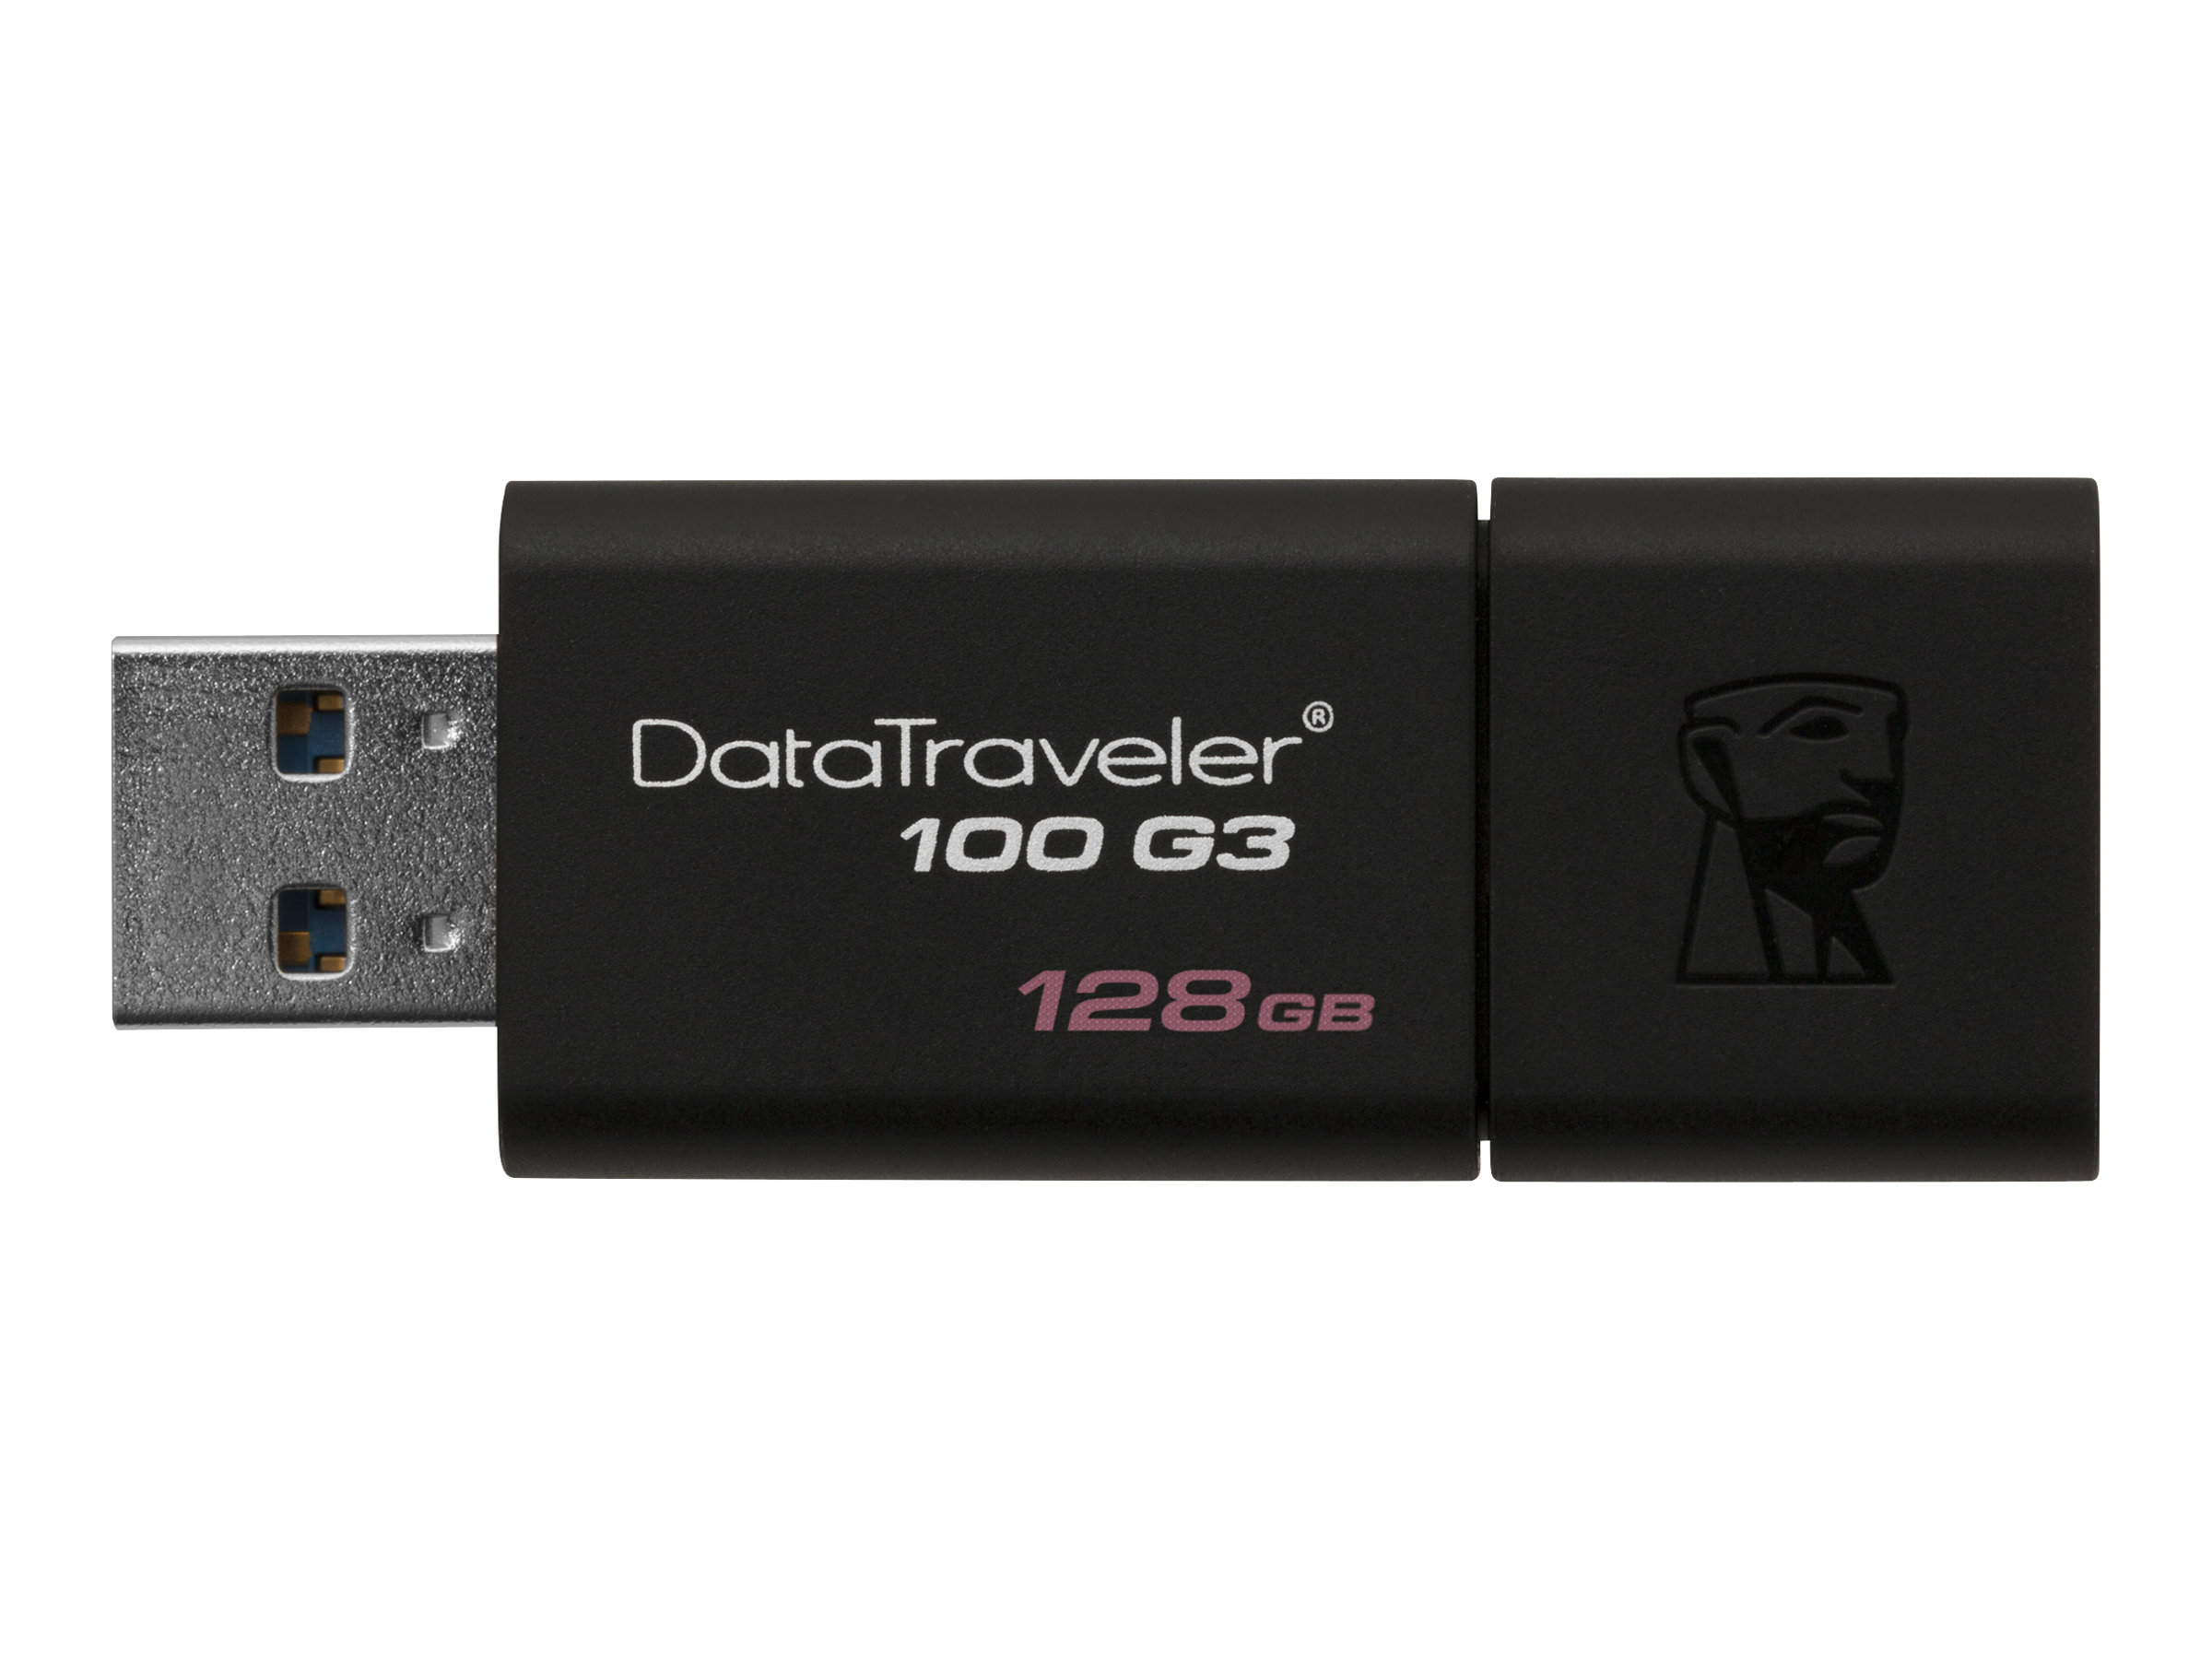 Kingston DataTraveler 100 G3 - USB flash drive - 128 GB